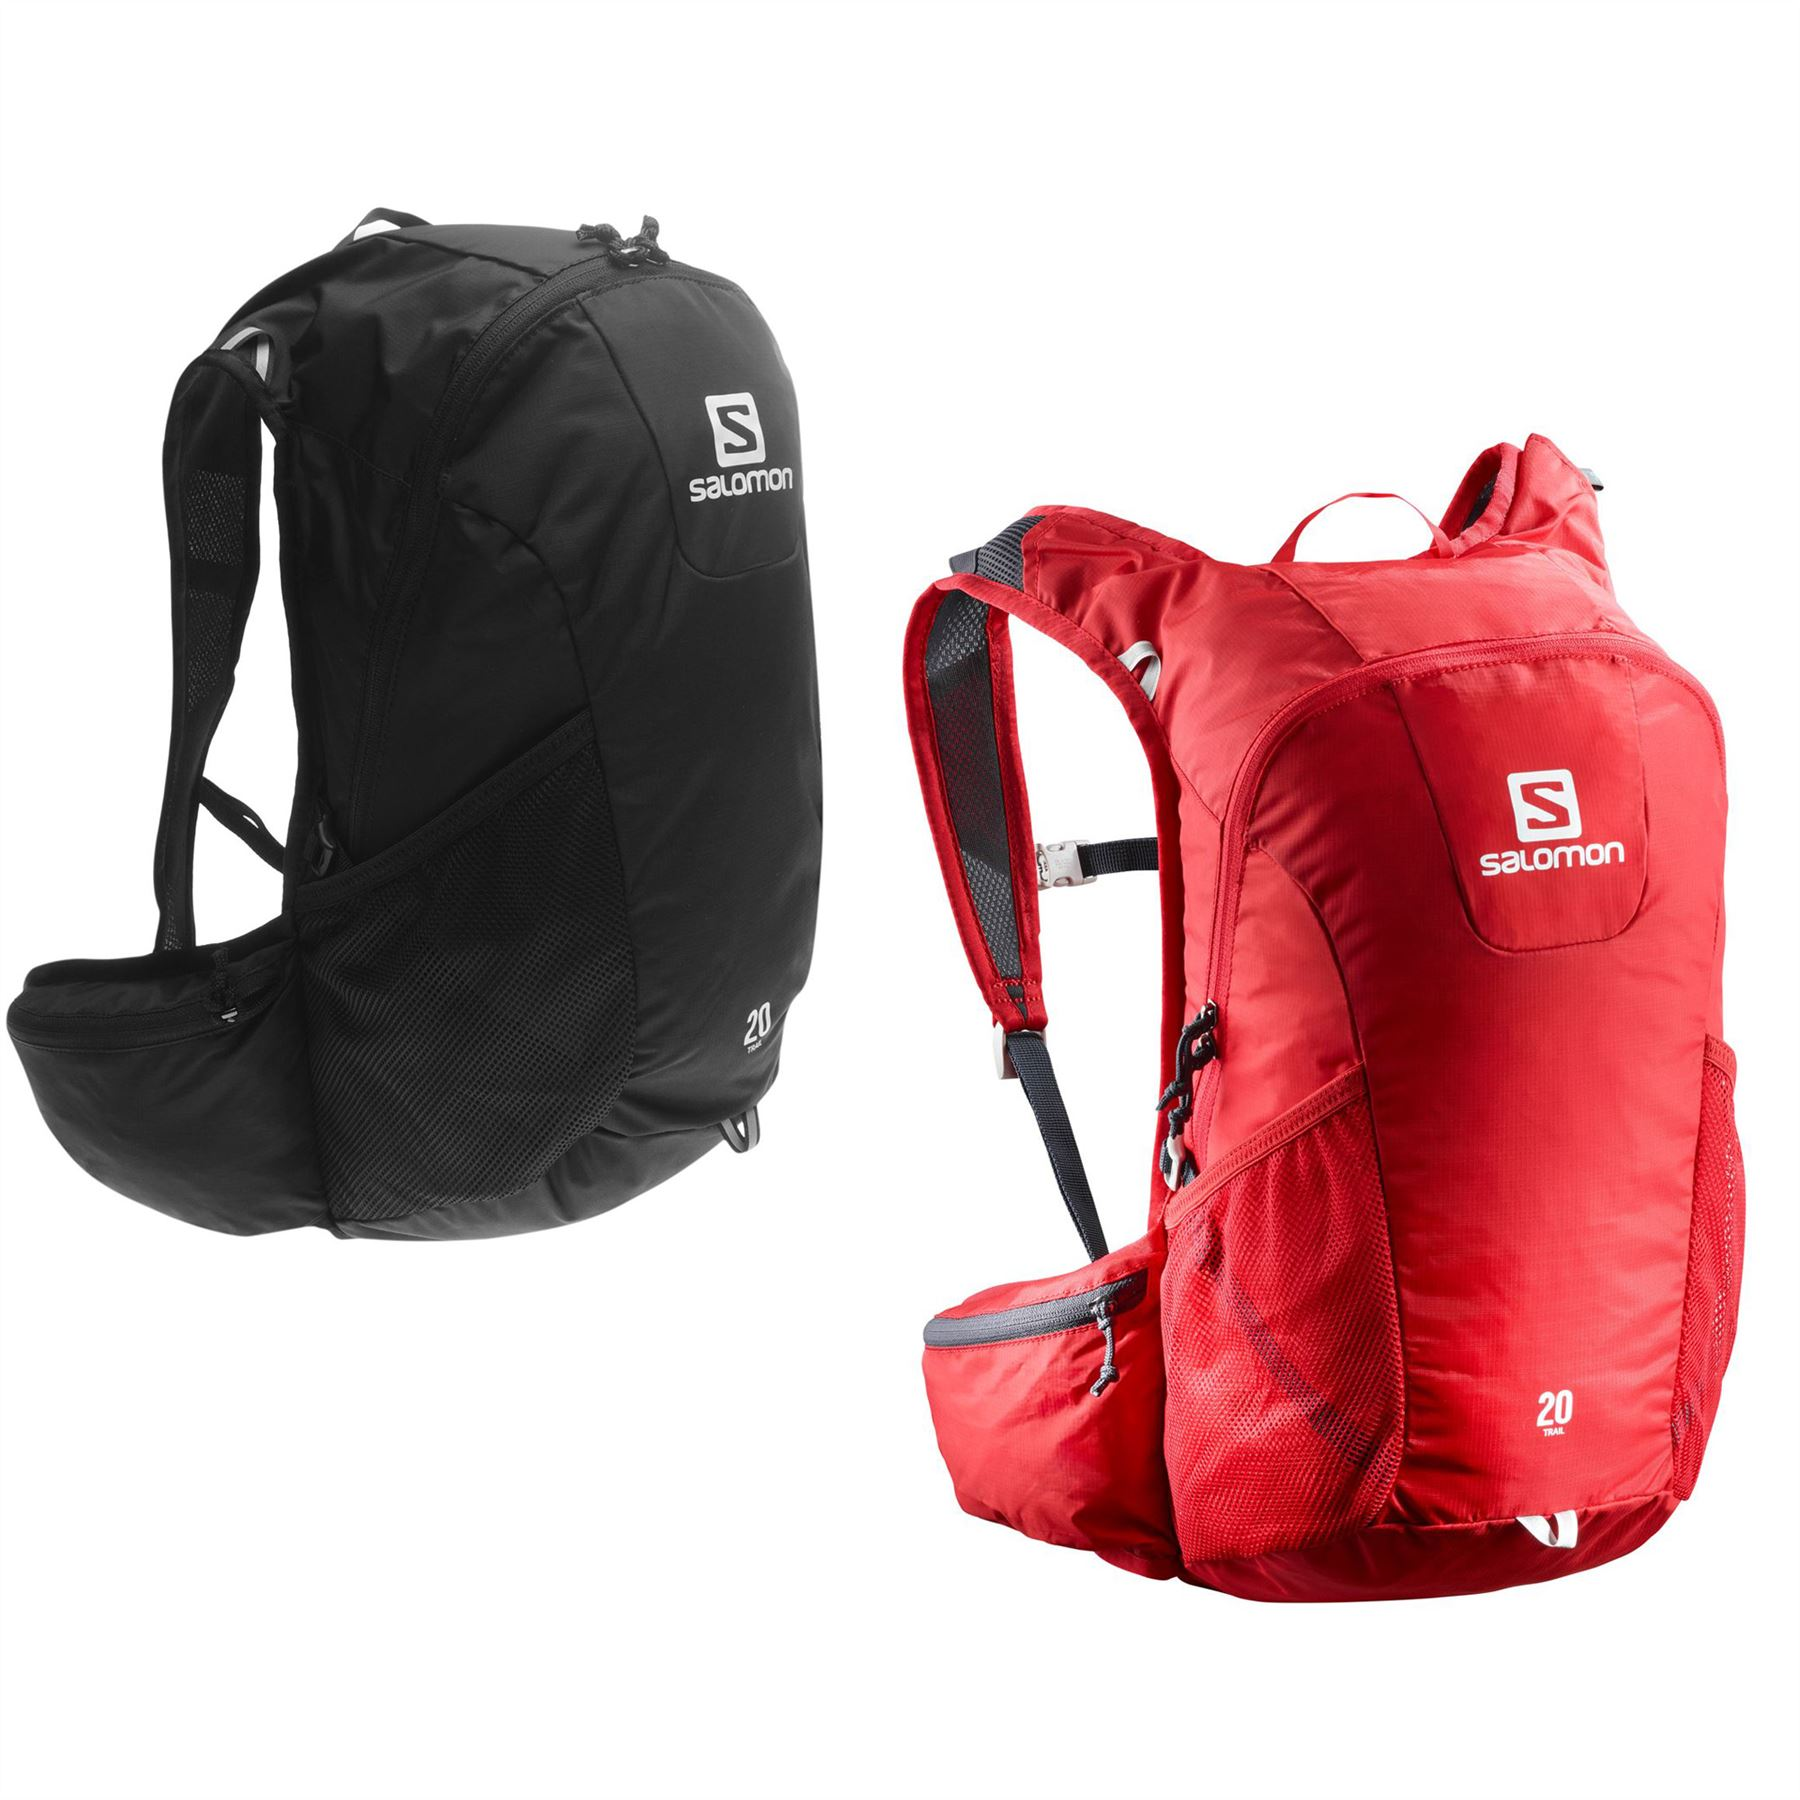 code promo 13650 cda86 Details about Salomon Trail 20 Backpack Rucksack Daypack Bag